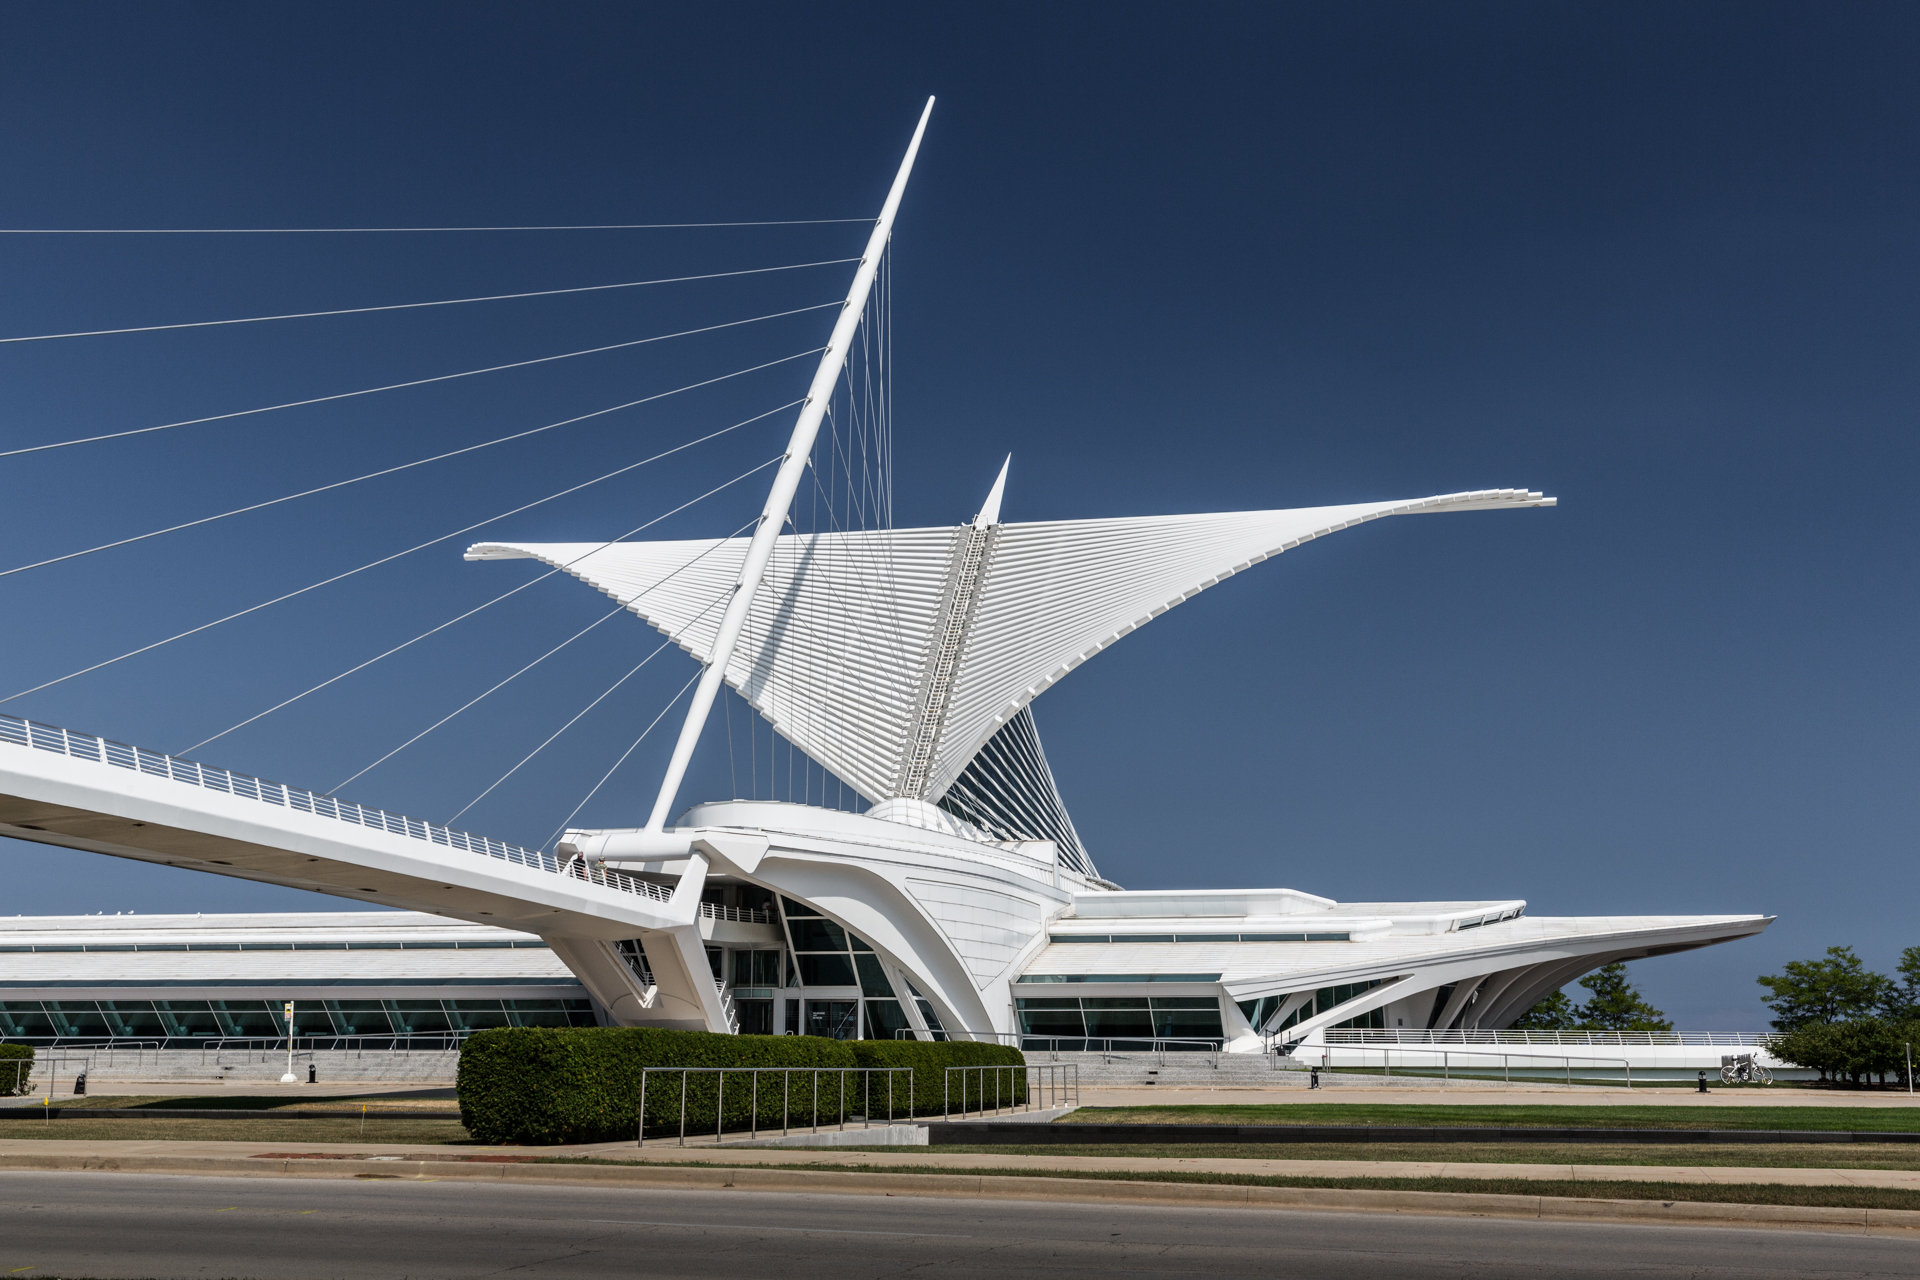 Santiago Calatrava designed: leading suspension bridge, mast and Burke Brise Soleil